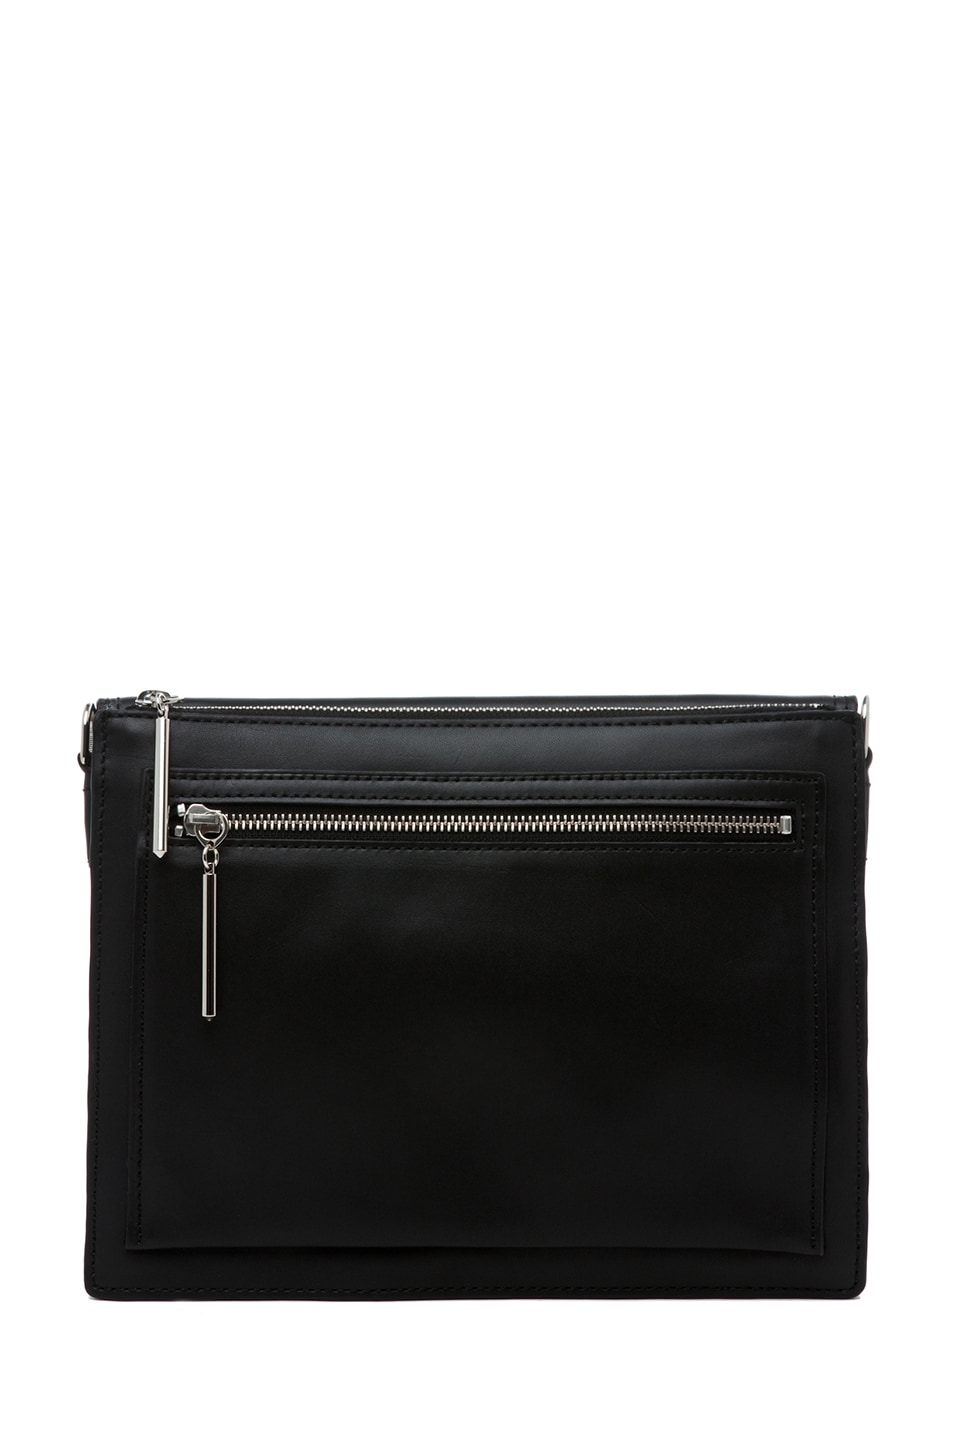 Image 2 of 3.1 phillip lim Polly Double Compartment Crossbody in Black